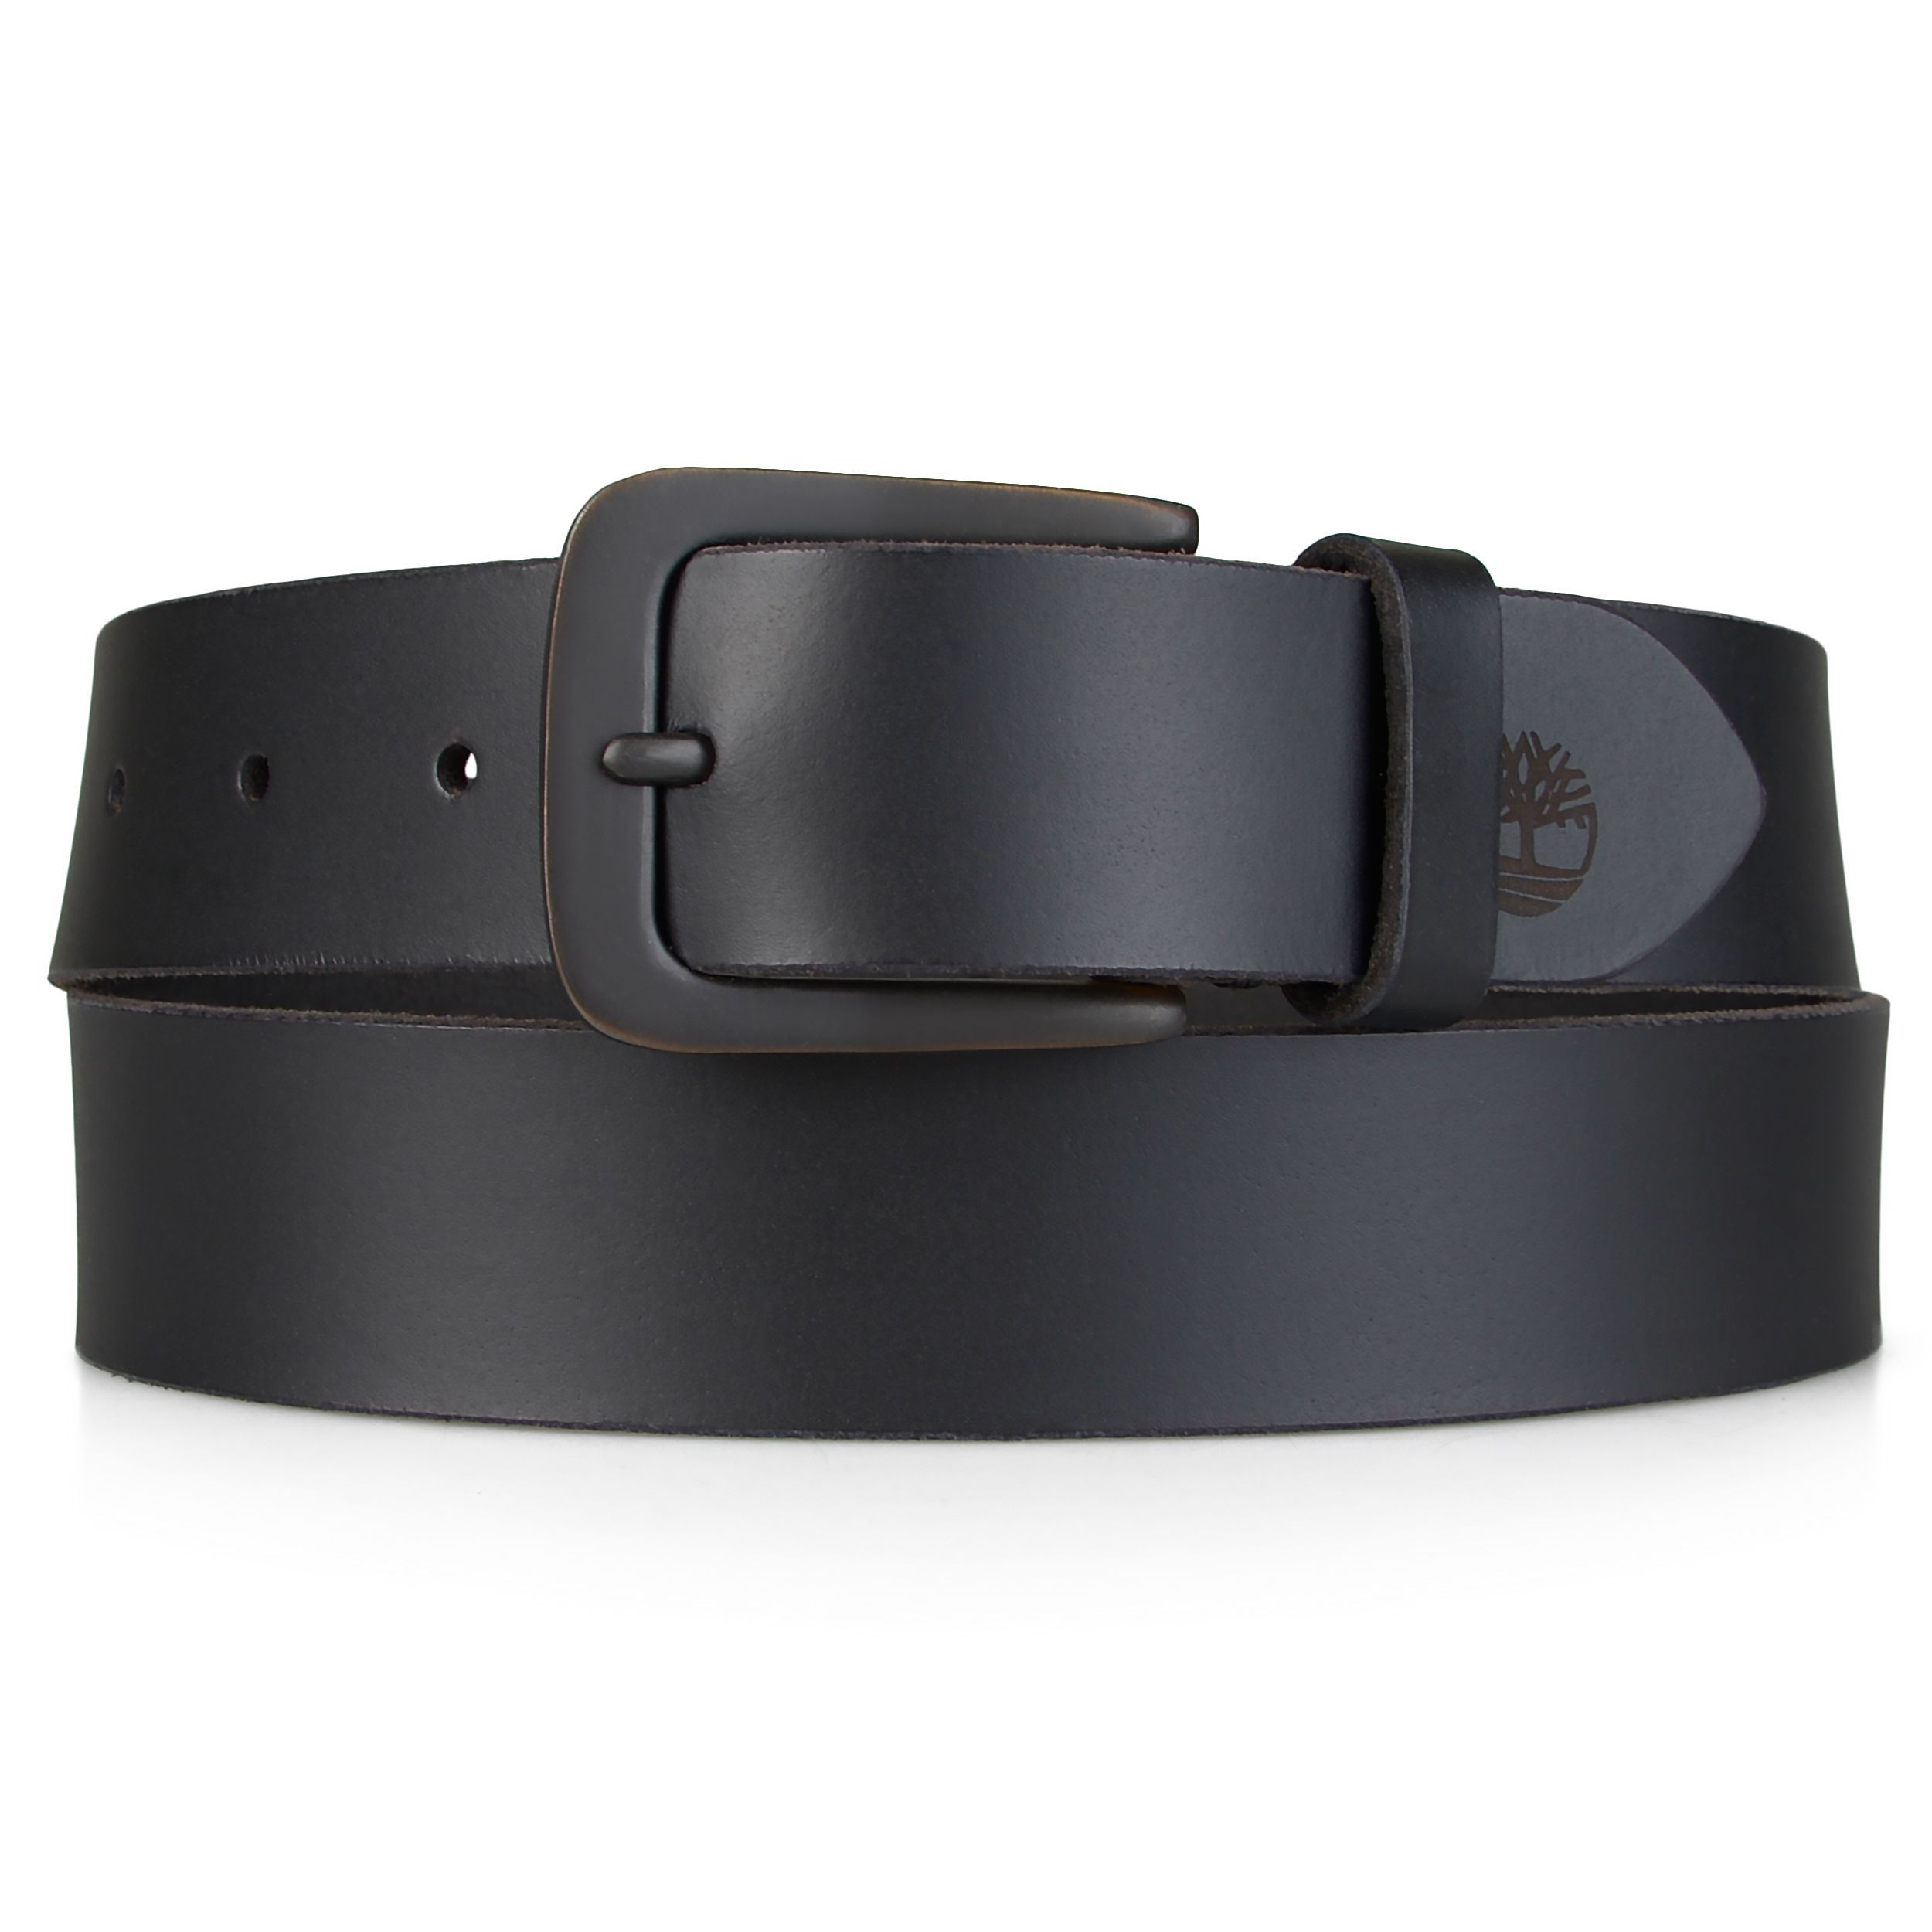 b8d0f1ca1a6171 Timberland Men s Genuine Leather Classic Belt by Timberland ...